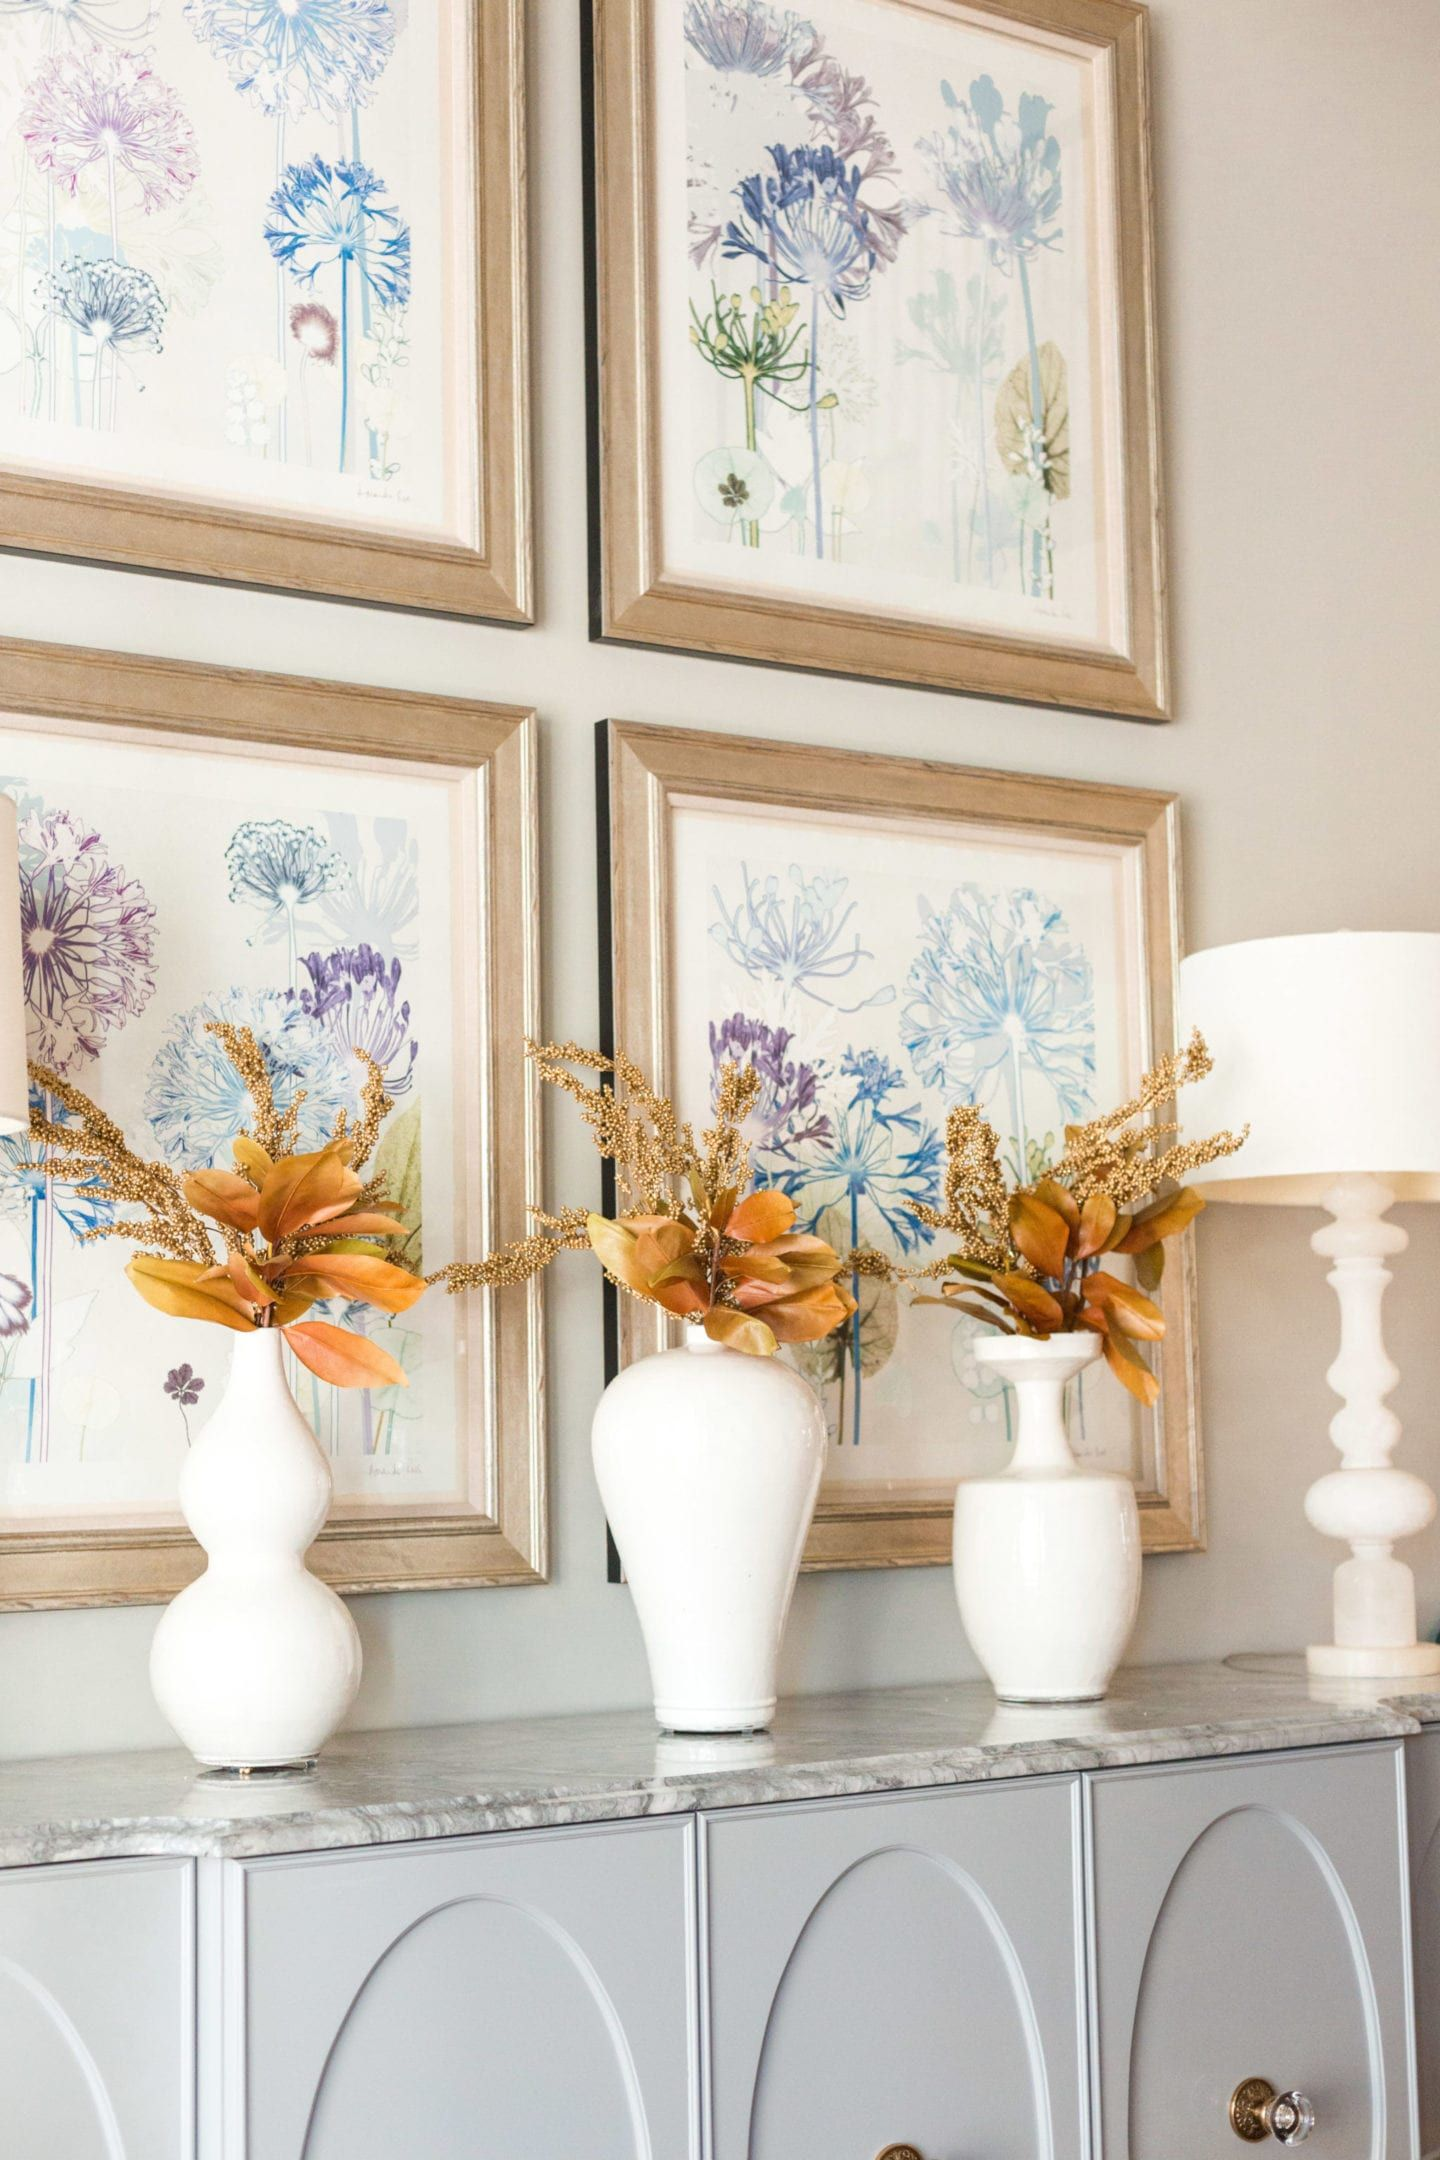 White Frontgate Vases With Brown Fall Leaves